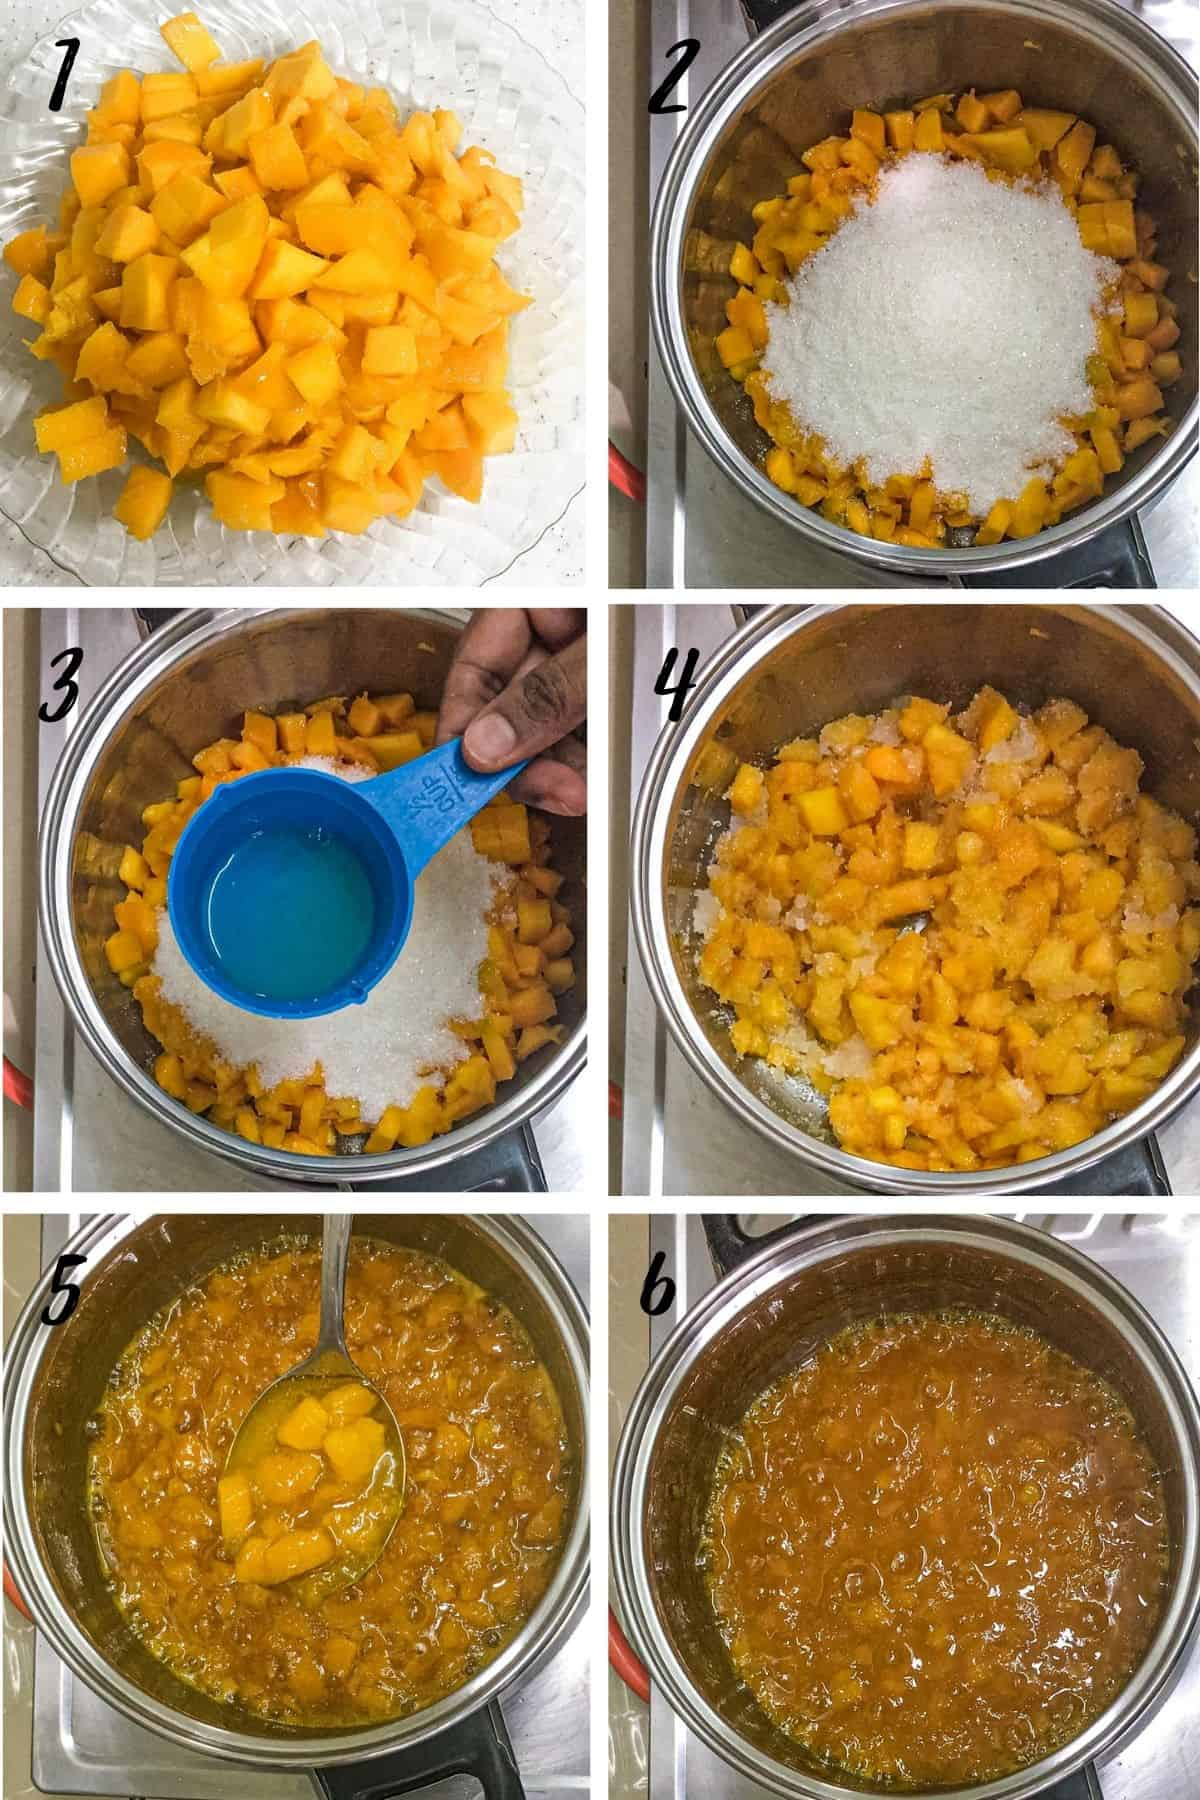 A poster of 6 images show cut up mango pieces cooked with sugar and lemon juice until the jam is done.